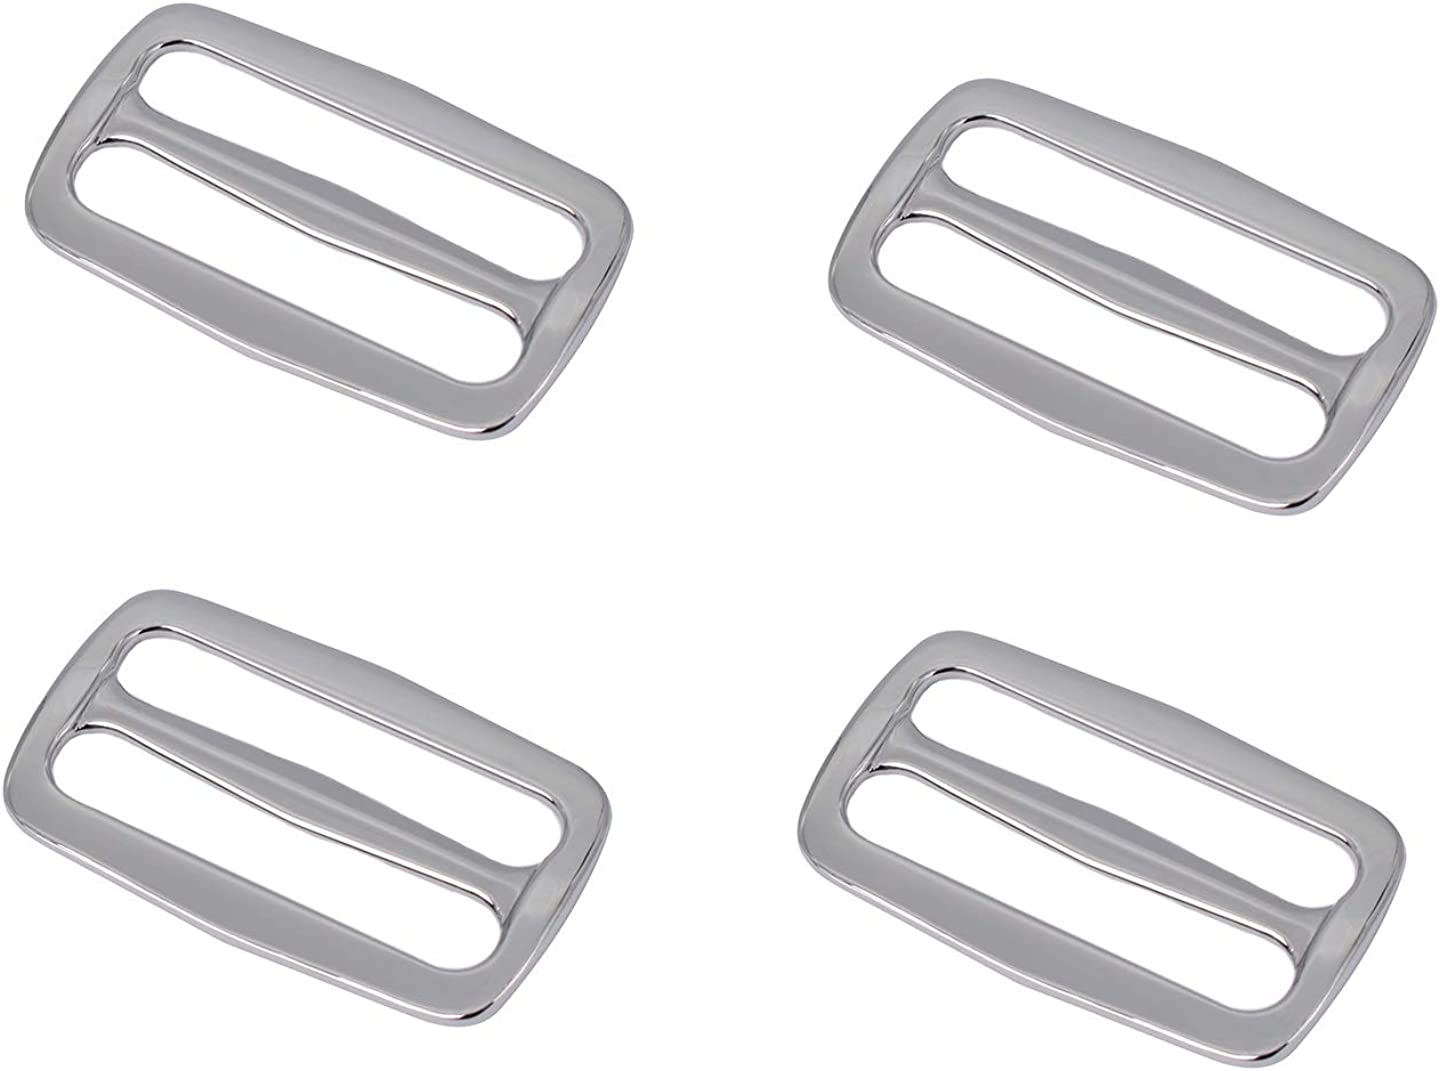 DYZD Multi-Function Metal Straps Triglides Slide Webbing Super special price New Shipping Free B